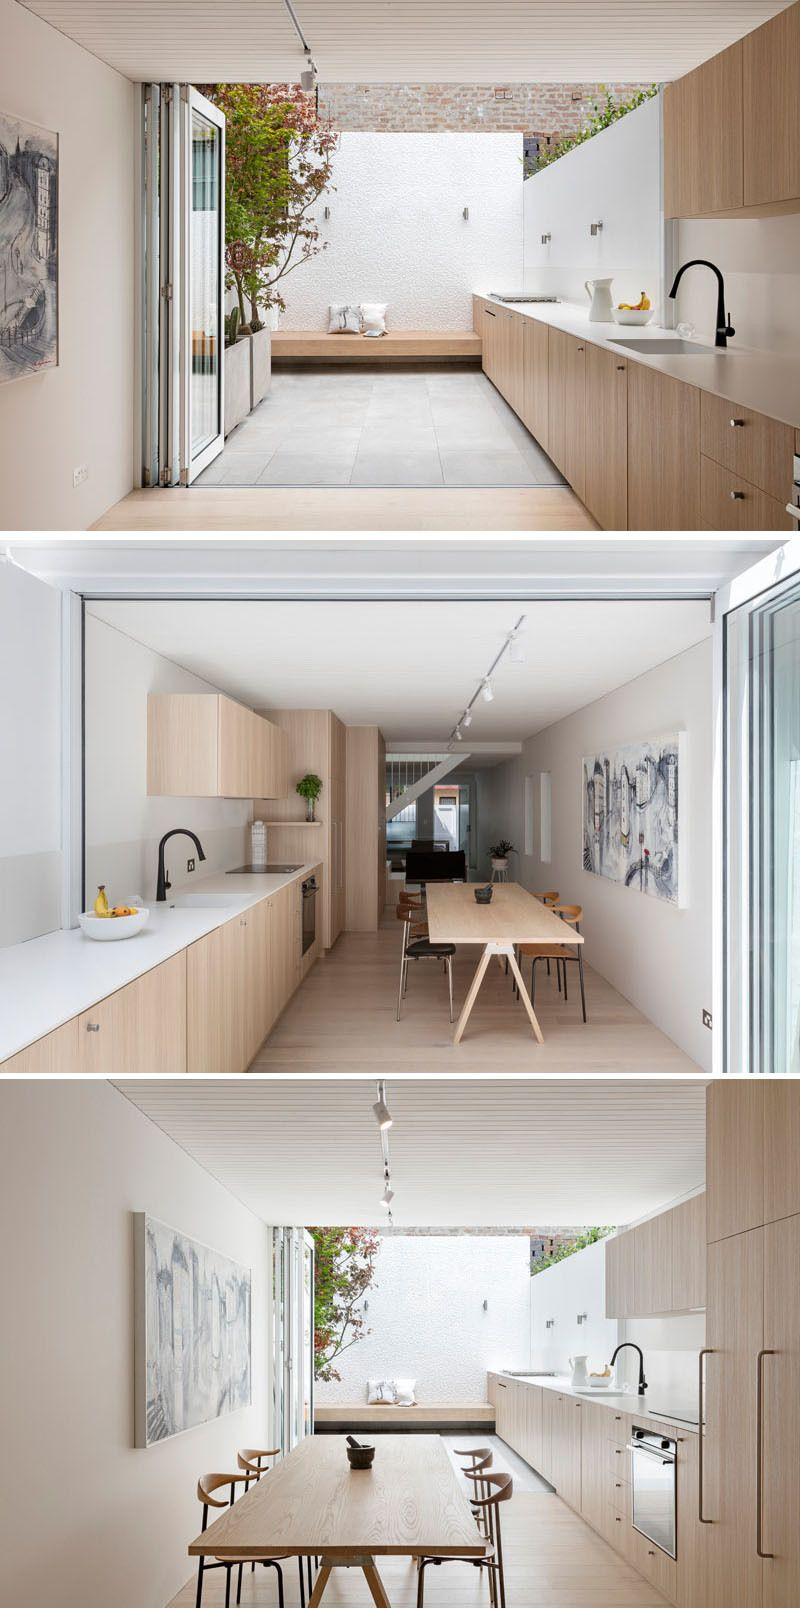 As part of an addition to  small house in sydney australia architecture firm benn penna designed kitchen that flows uninterrupted from the inside also rh pinterest